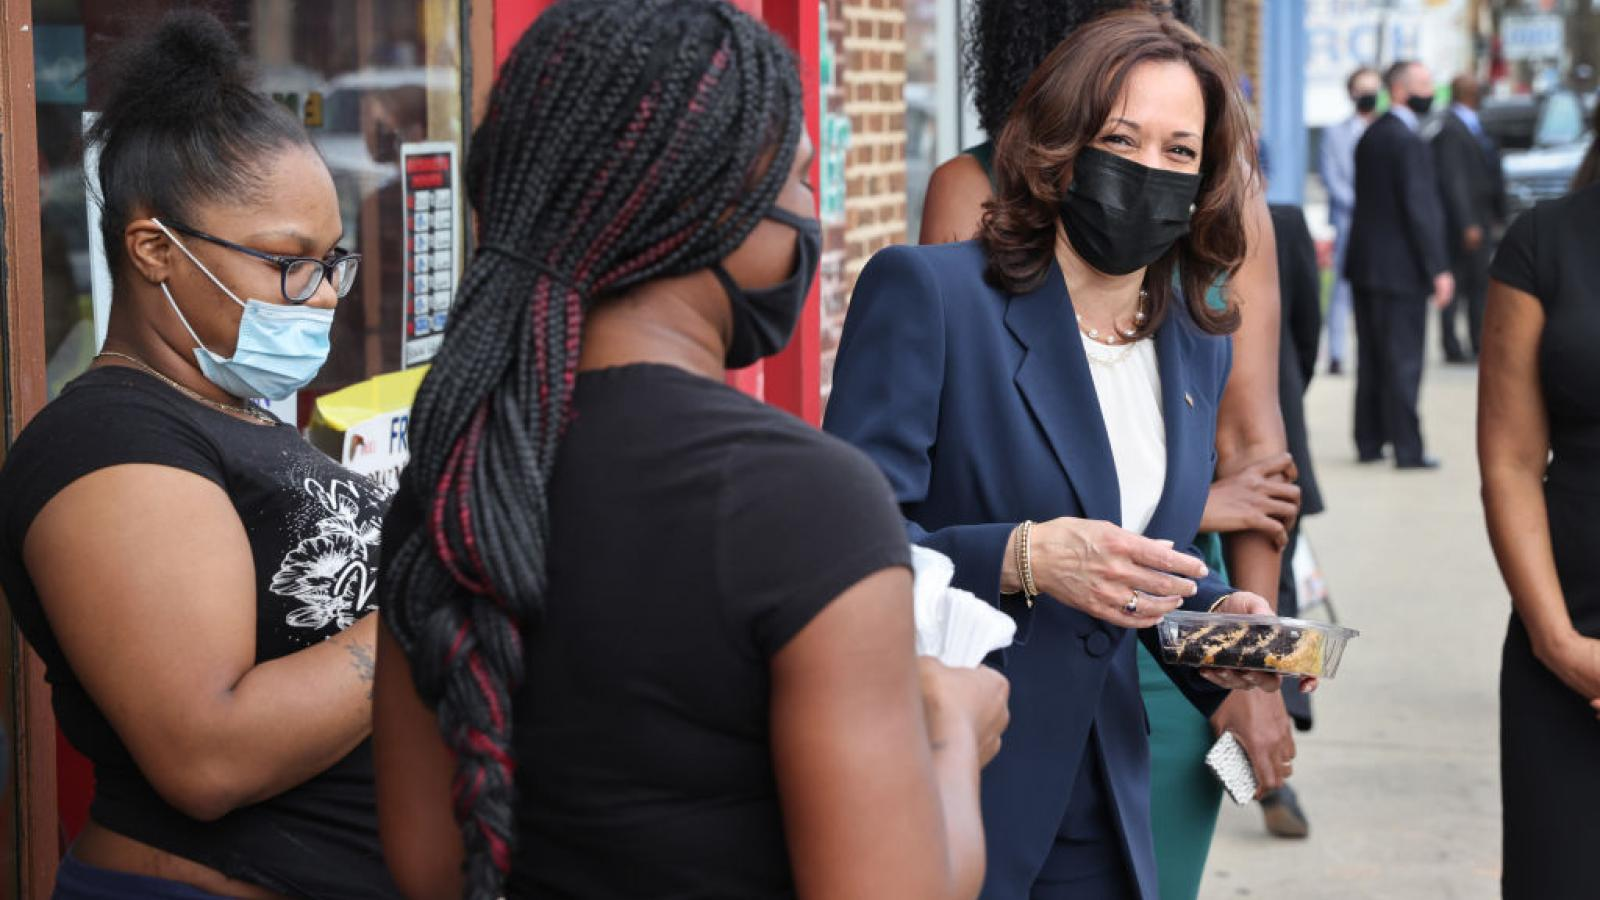 Kamala Harris visits a bakery, Chicago, IL, Apr. 6